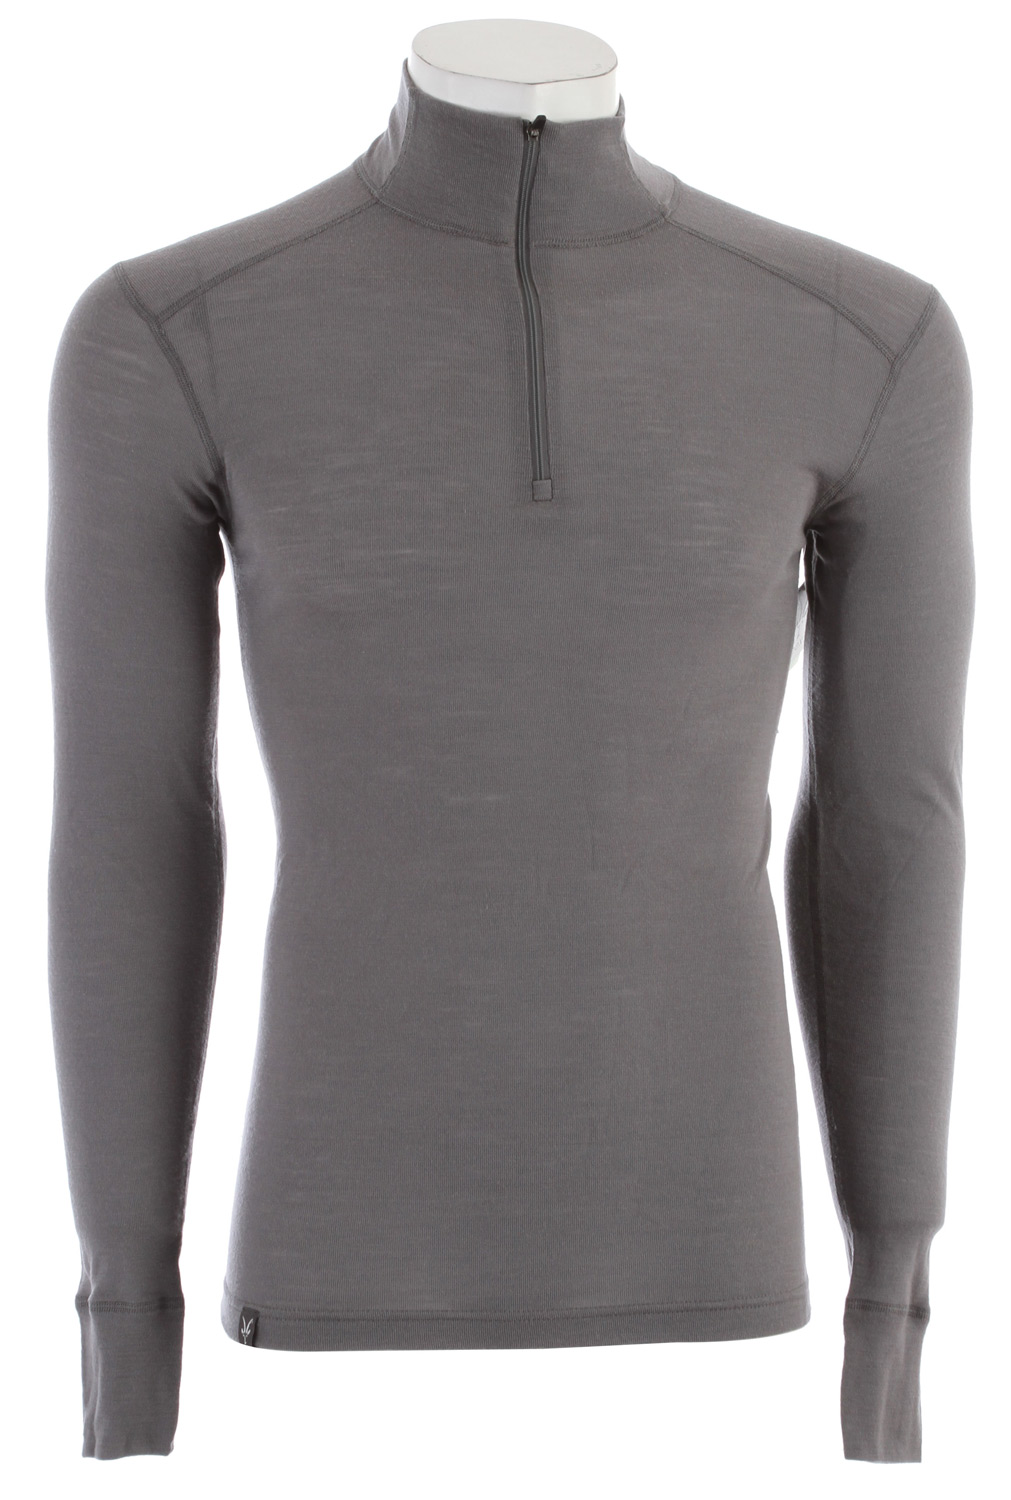 "Tightened up to the chin, the 18.5 micron New Zealand Merino wool fabric forms a perfect 150g/m2 baselayer weight with a versatile Zip T top. You'll reach for this one over and over. Key Features of the Ibex Woolies 150 Zip T Baselayer Top: Lightest Ibex base layer Form-fit Set-in sleeves Flatlock seams 9"" Zip Neck w/ locking zipper pull Wide sleeve cuff details Tag-free labels Made in Canada Lightweight rib knit 18.5 micron 100% Zque New Zealand Merino wool 150 g/m2 Garment Weight (oz): 7.04 - $84.95"